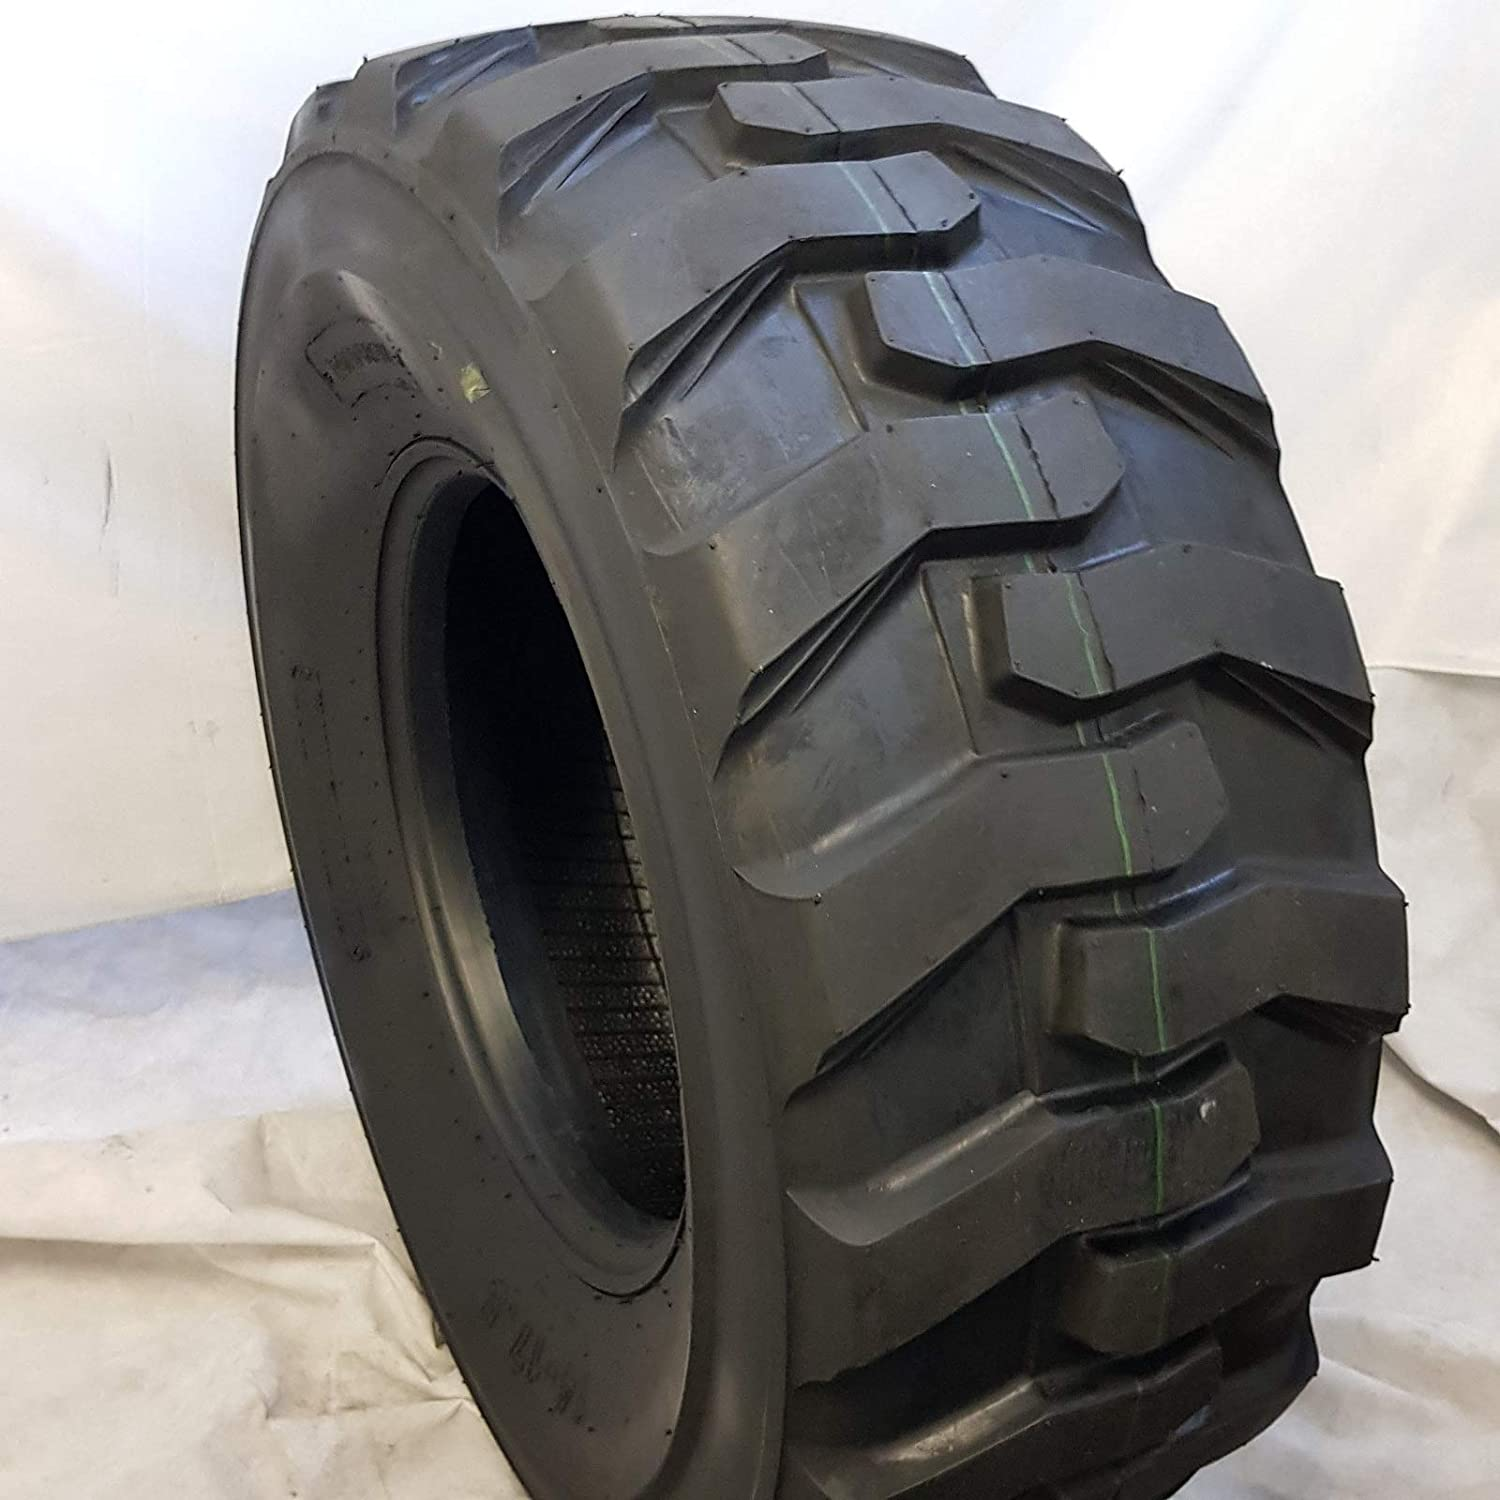 Amazon Com 4 Tires 14x17 5 Road Crew 16 Ply Skid Steer Tires For Bobcat Others 14 17 5 1417514 Automotive